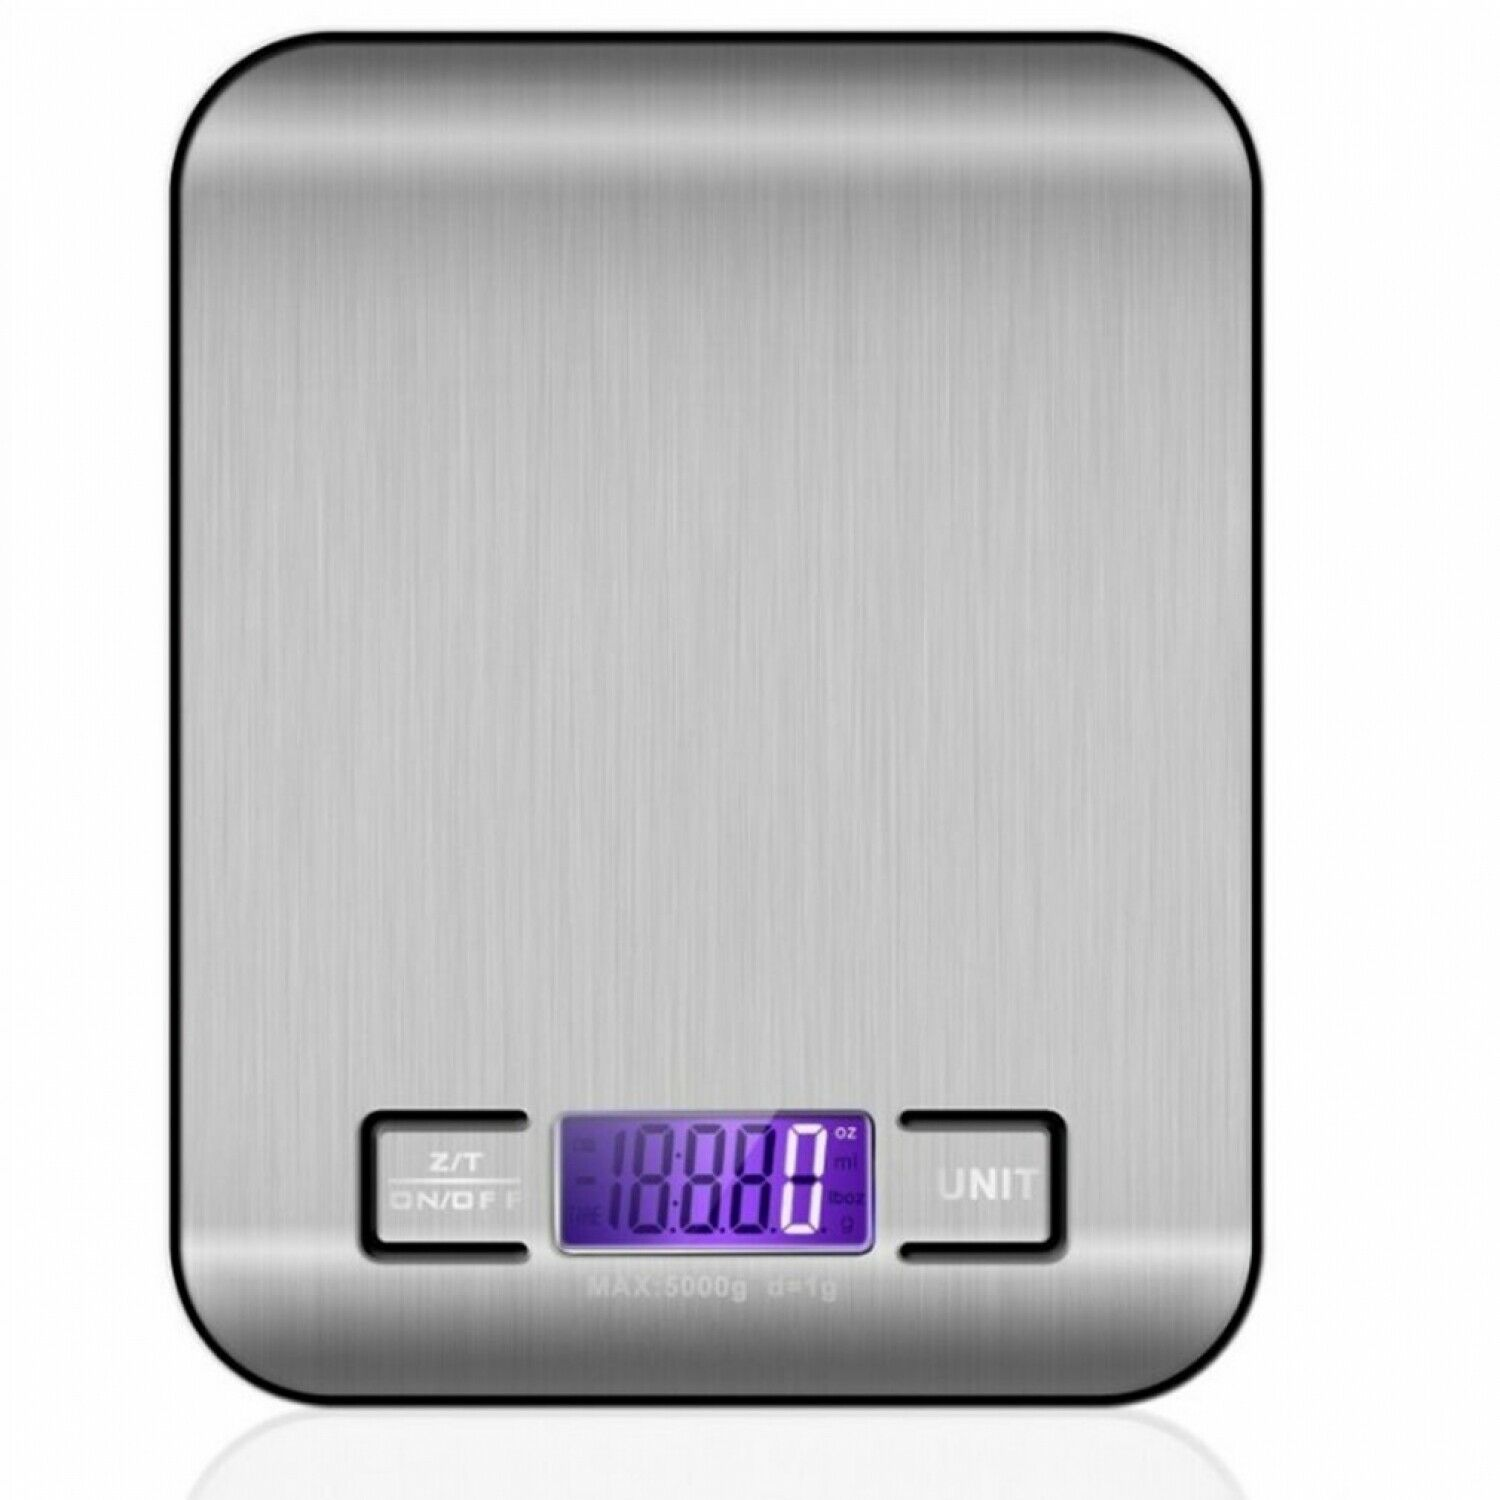 Sidiyang digital kitchen scale mini pocket stainless steel precision jewelry electronic scale weight gold grams tare weight function counting function 3000gx0.1g